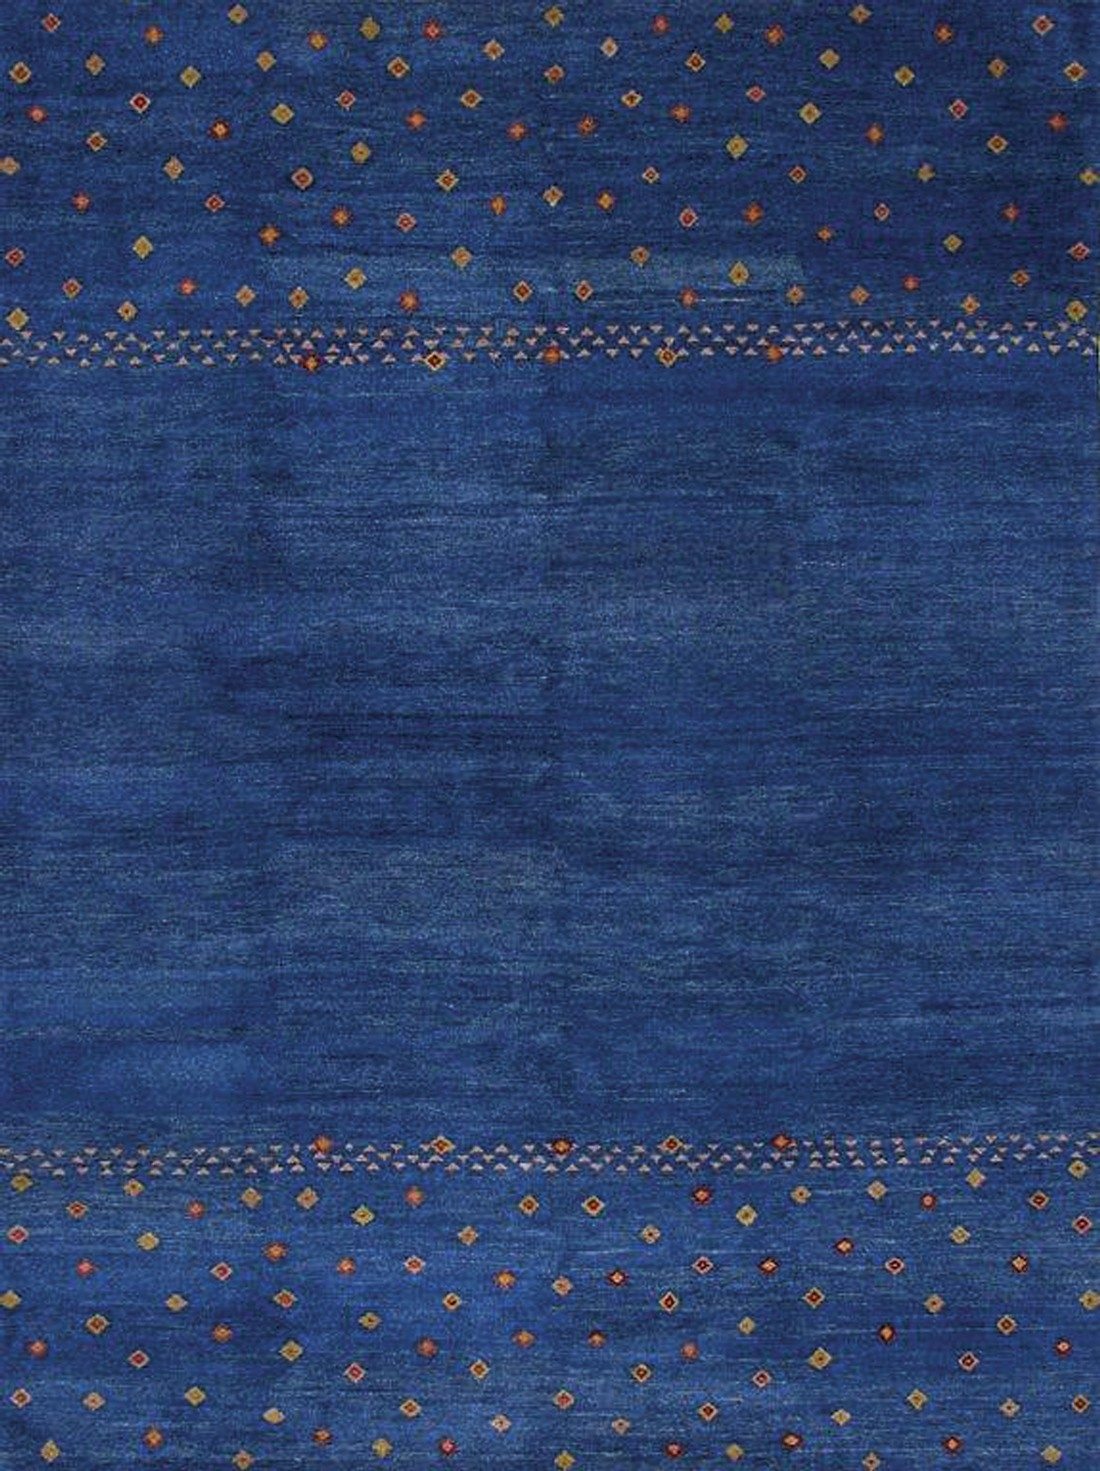 Rugsville Gabbeh Tribal Blue Wool Rug 13203 Rugsville With Regard To Wool Blue Rugs (Image 12 of 15)